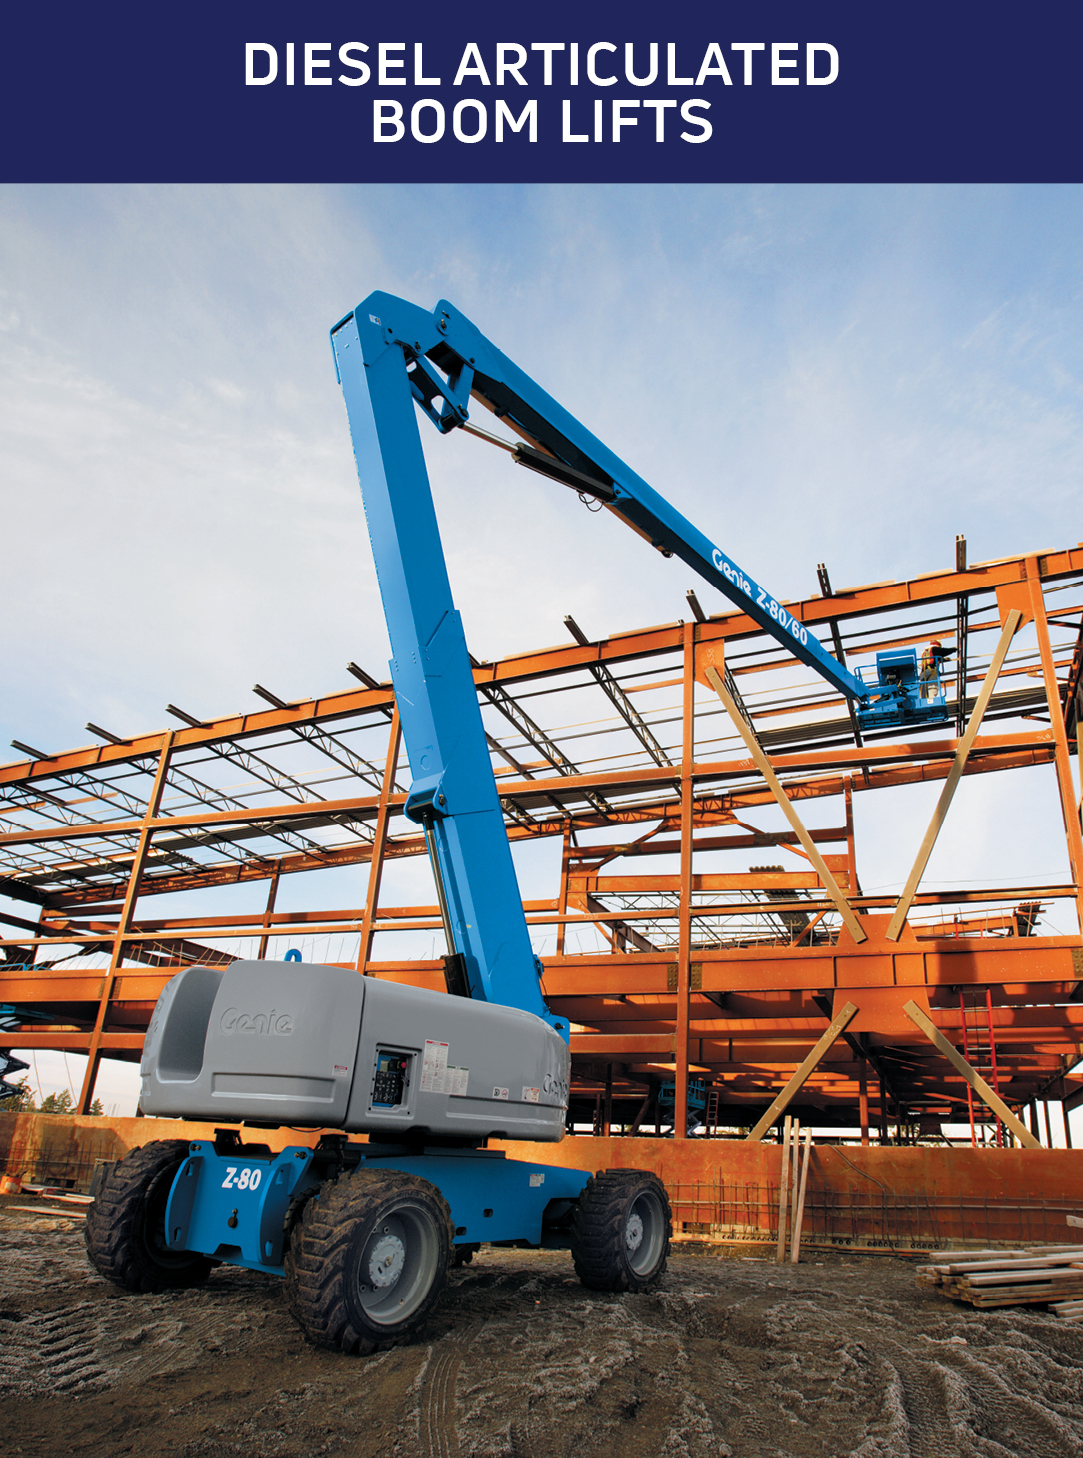 Diesel Articulated Boom Lifts